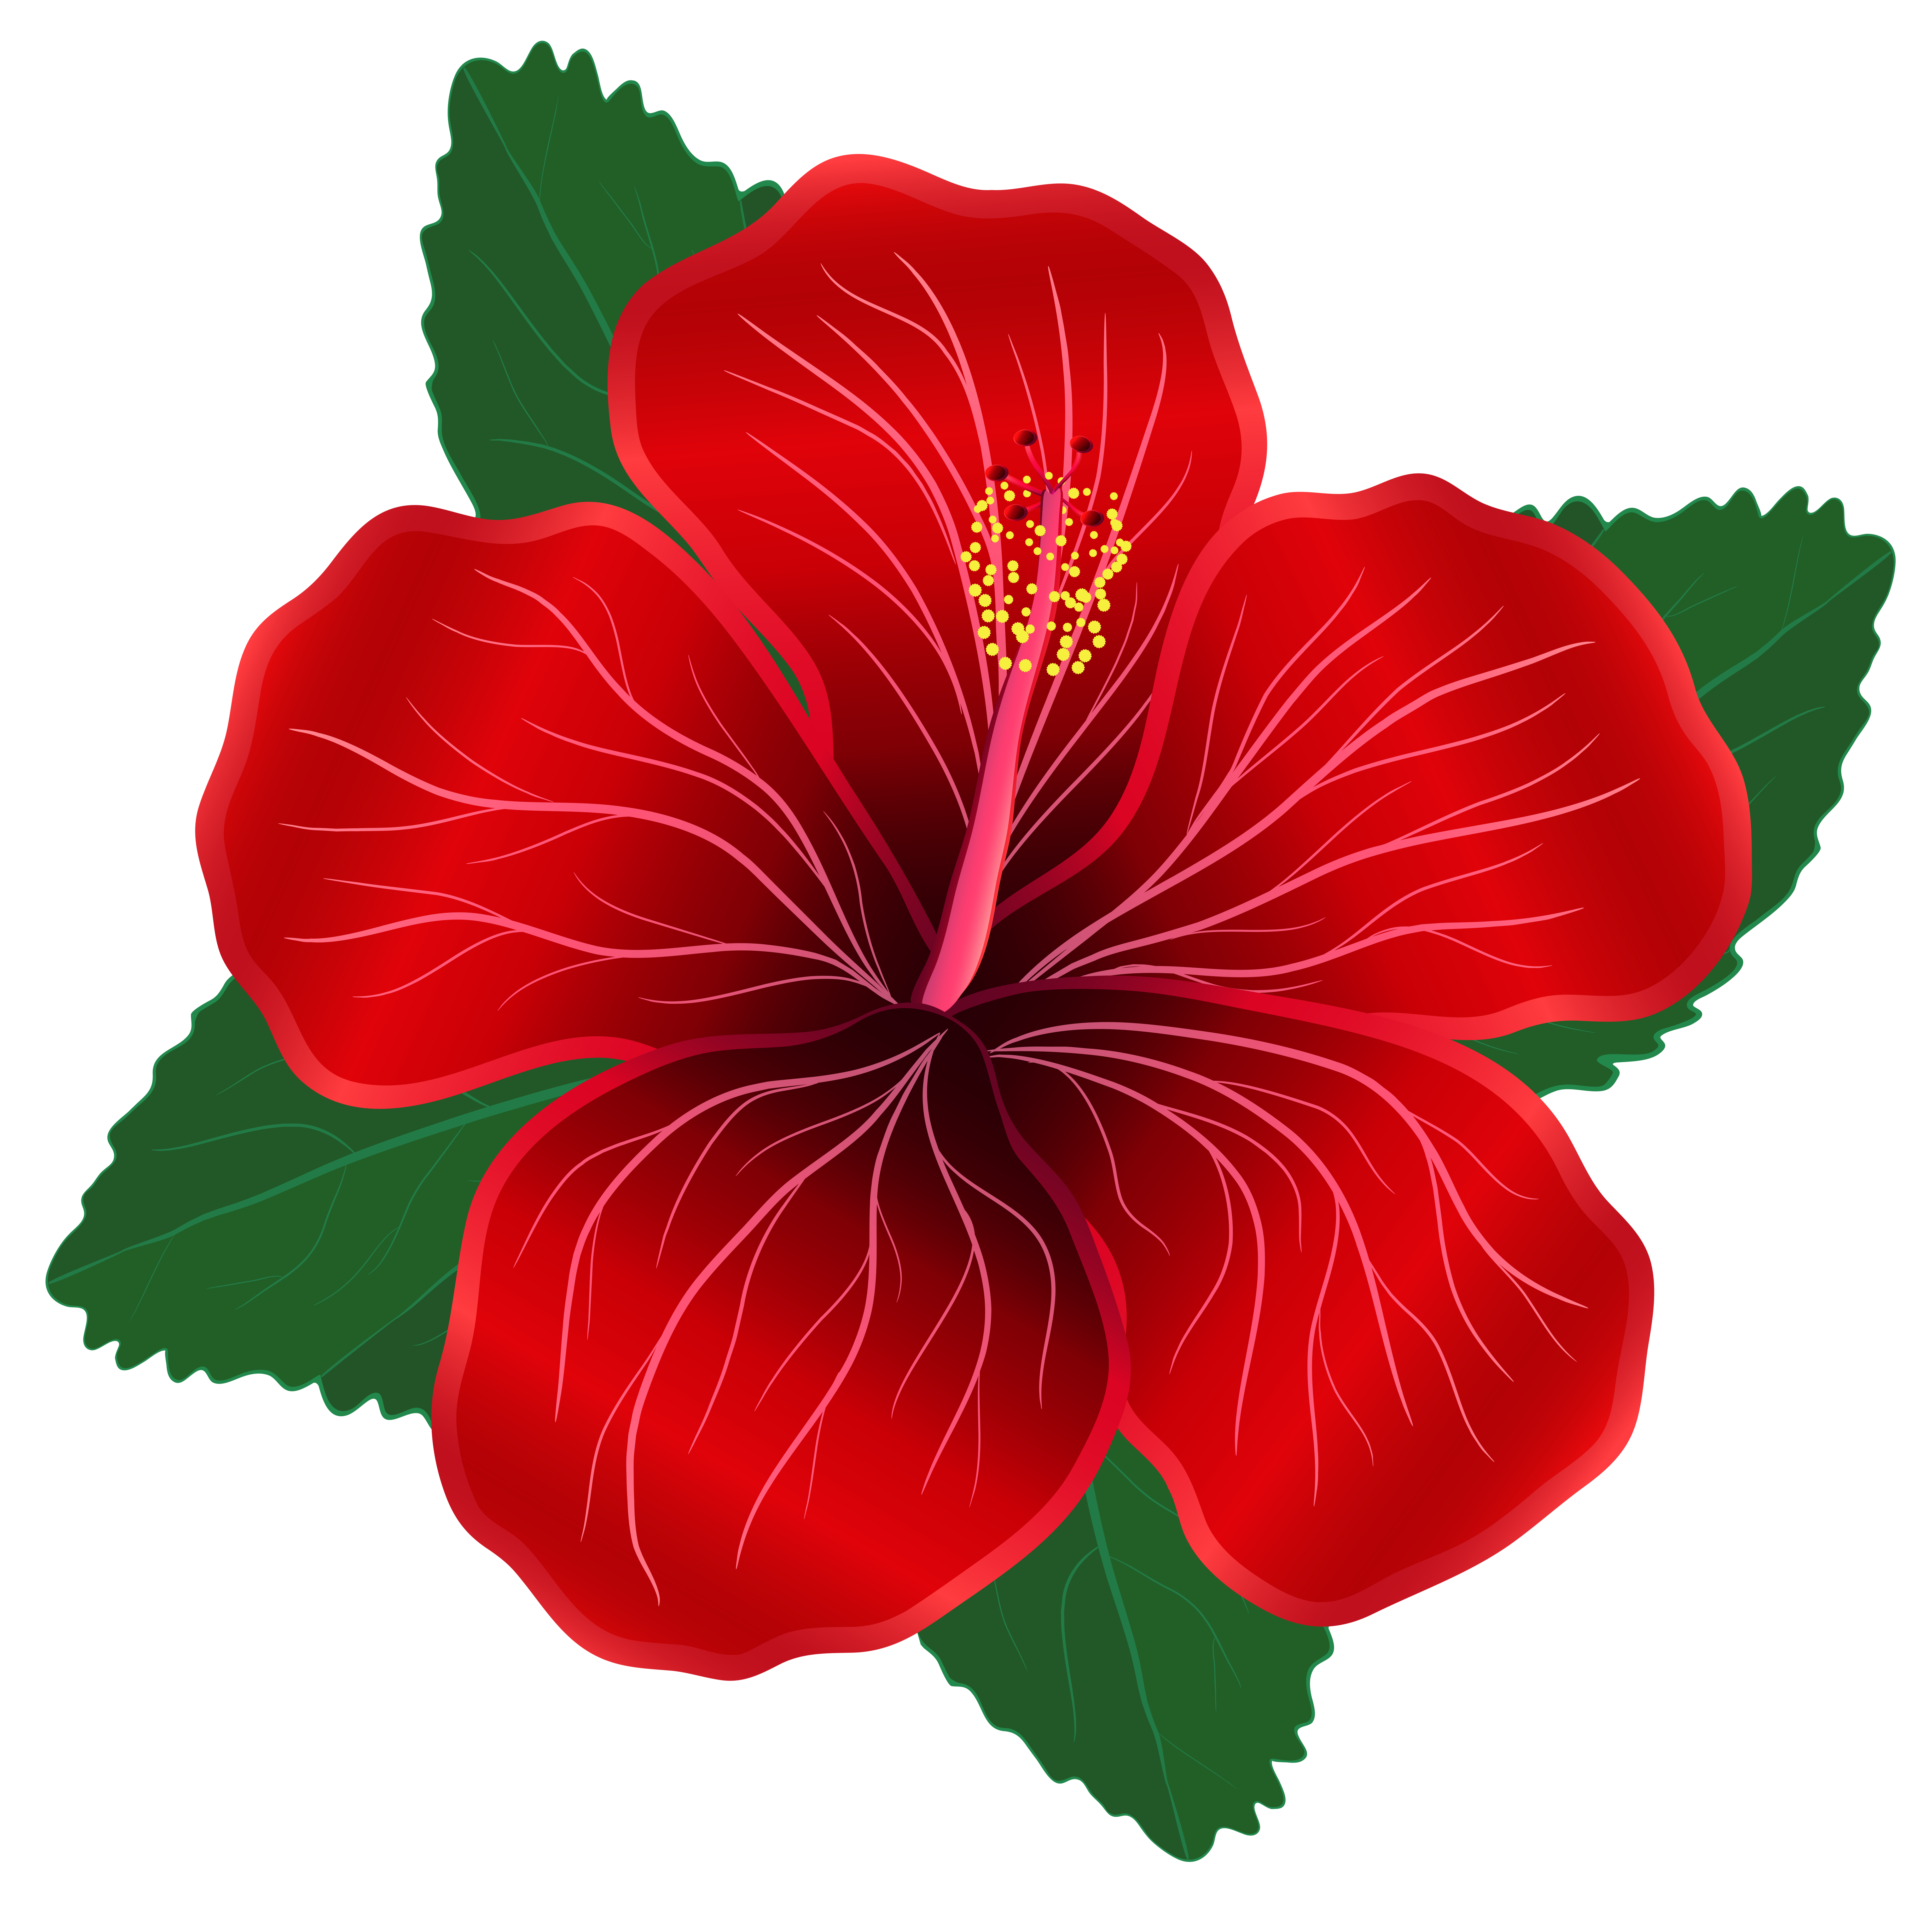 Red Flower PNG Clipart Image.